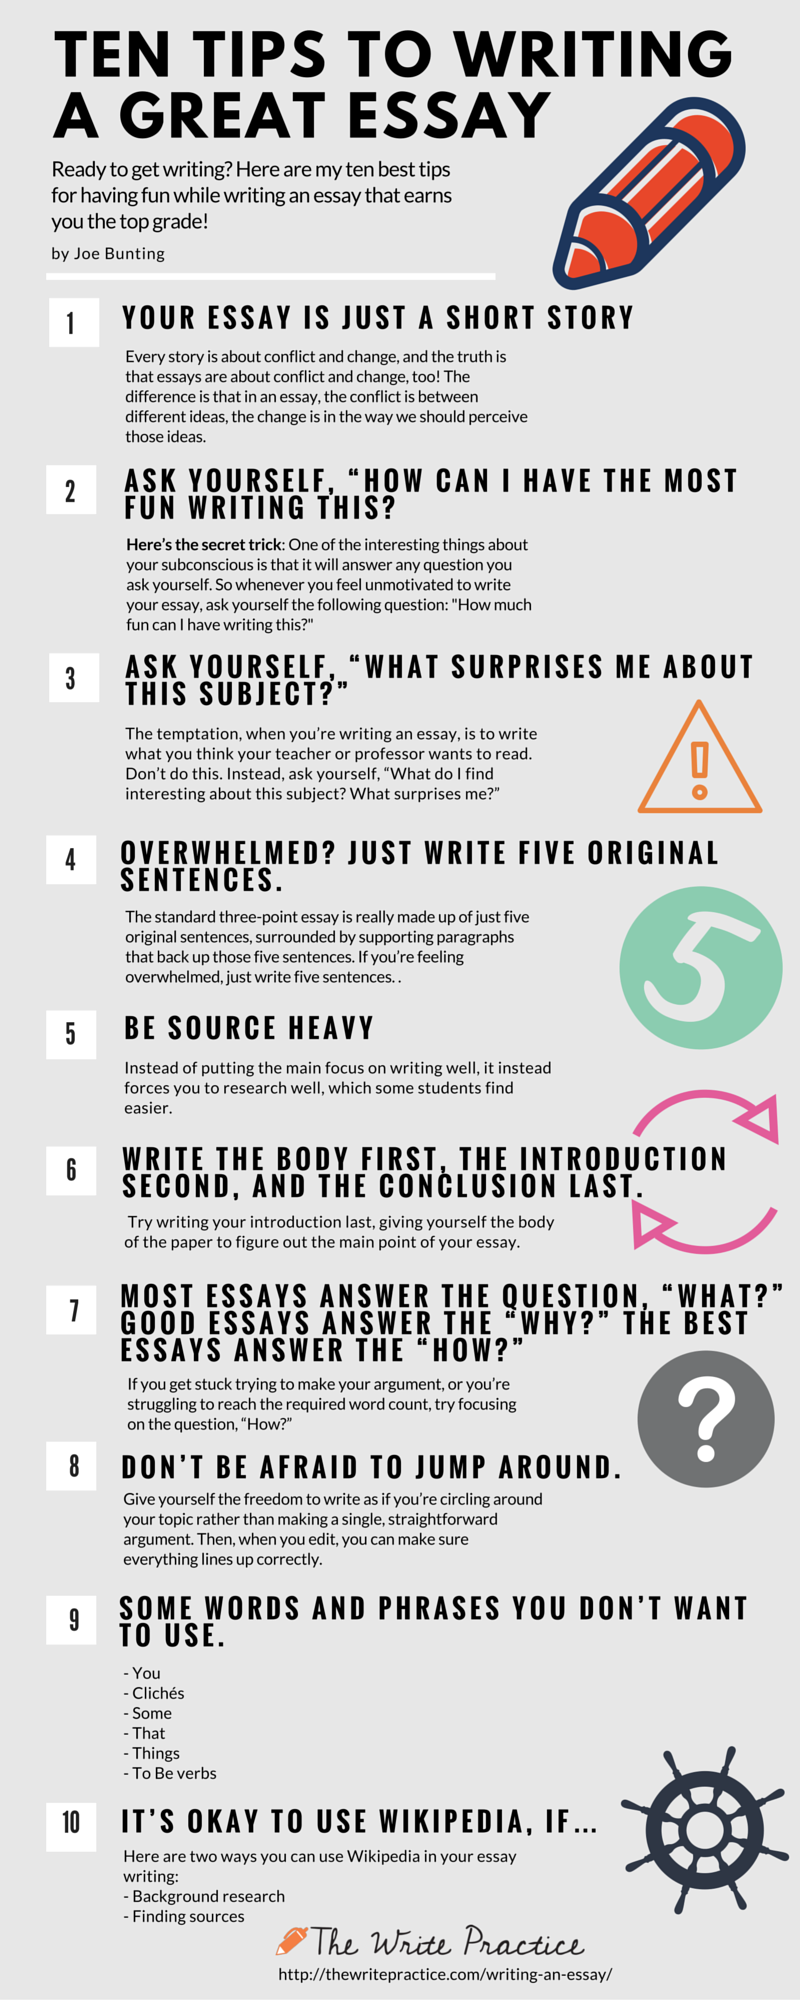 10 tips to write an essay and actually enjoy it writing an essay that in mind here s an infographic ten tips to write an essay out hating every moment of the process get the dream tech or developer job you